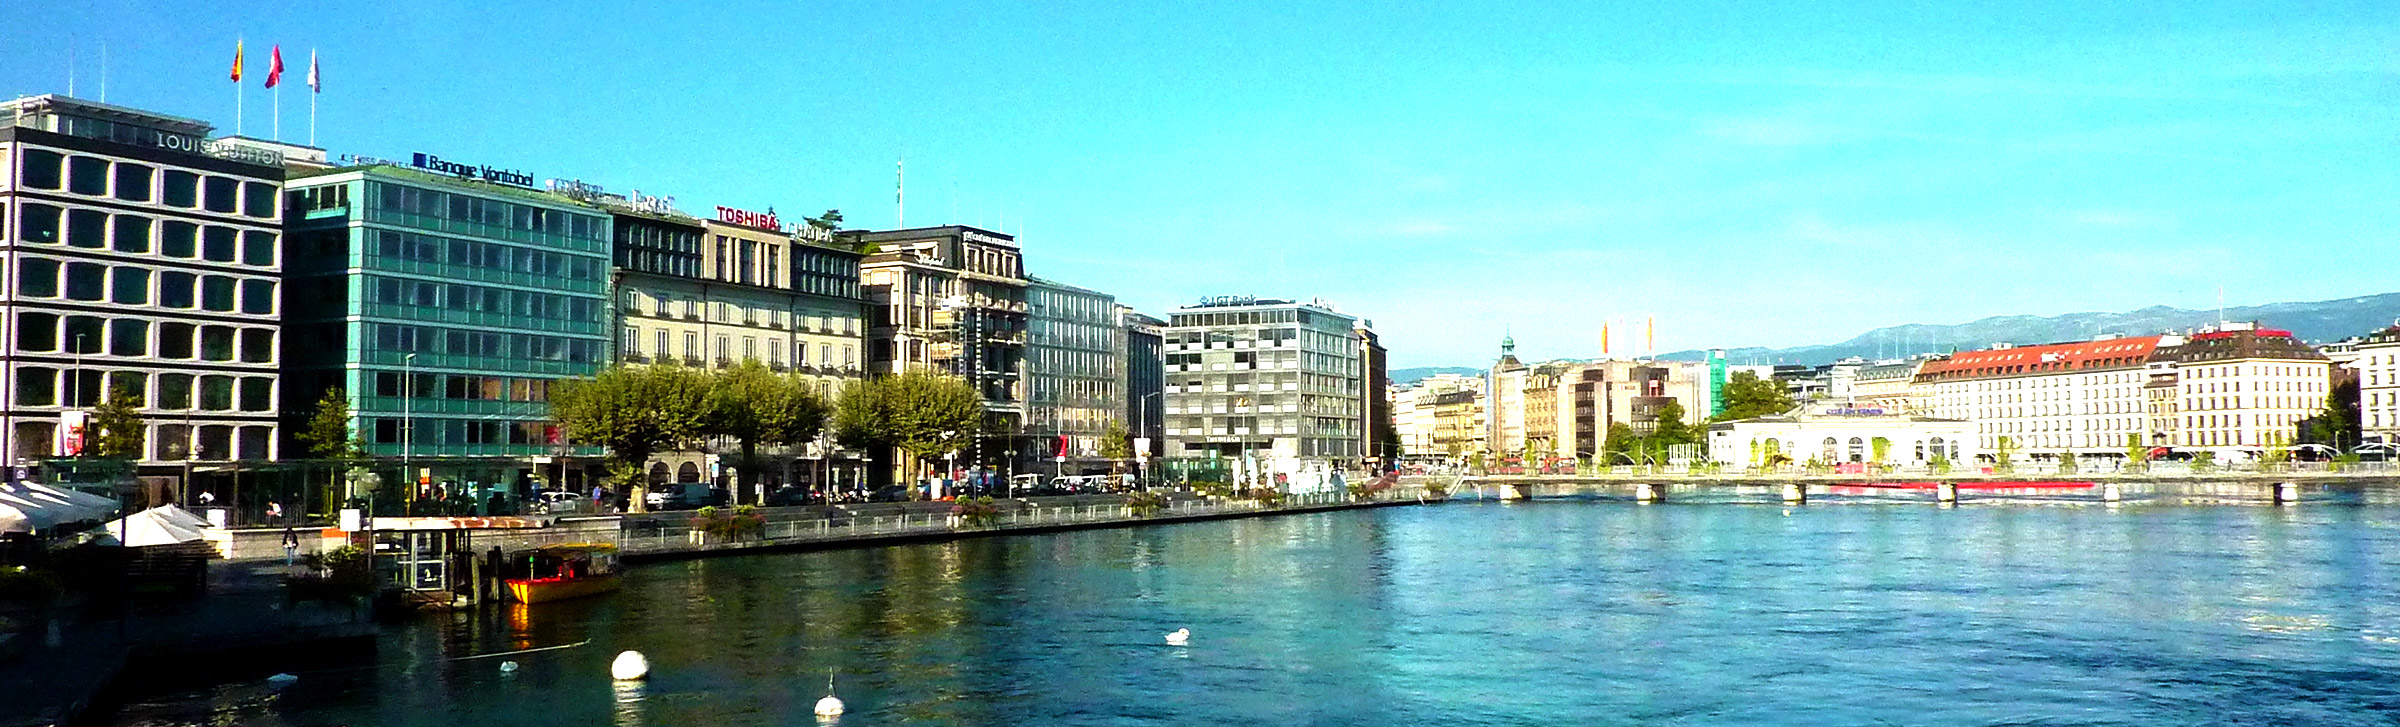 Geneva business district